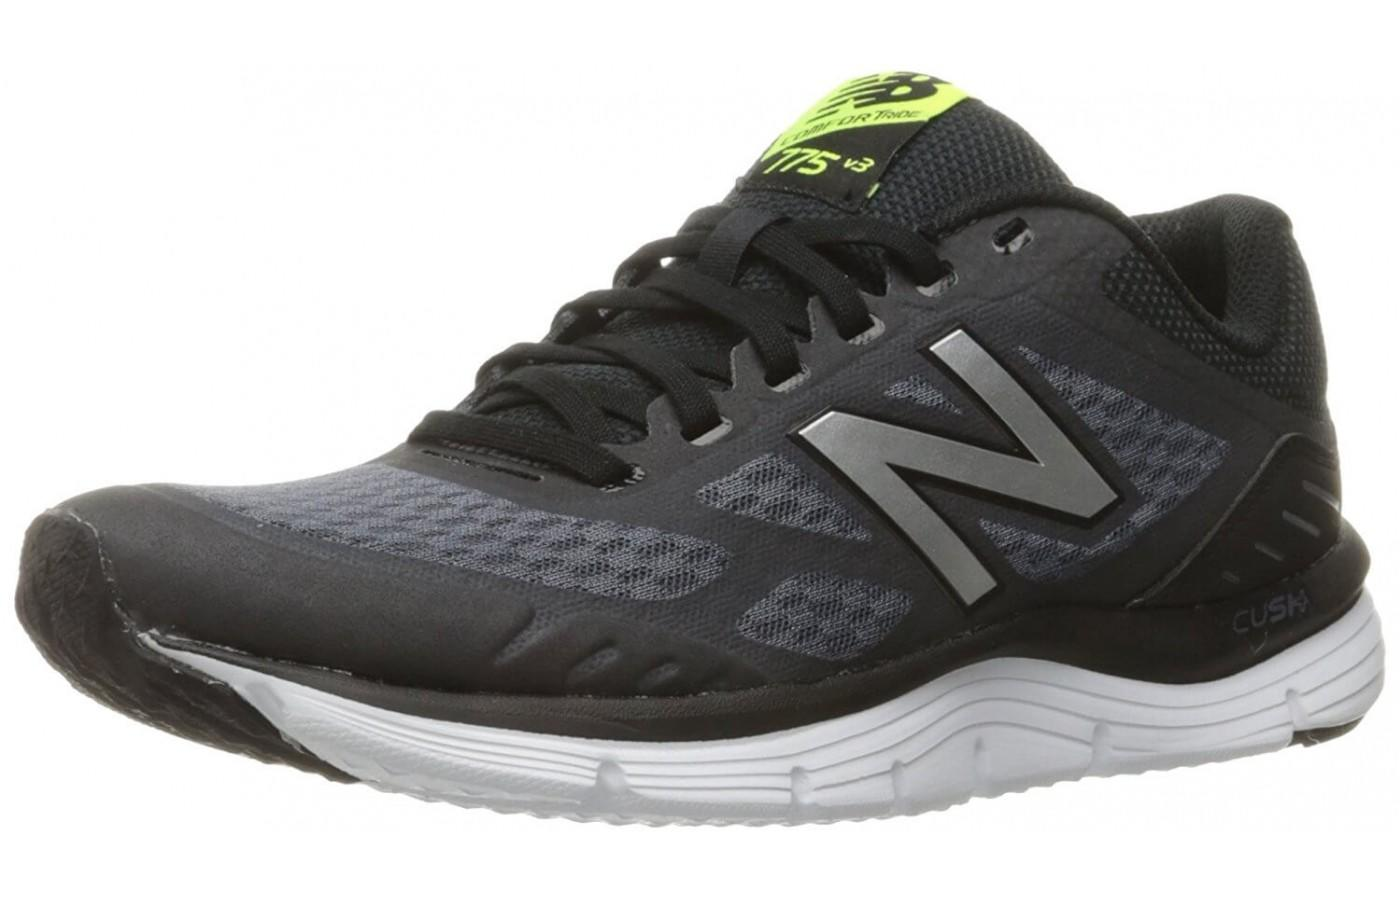 The 775 V3 lightened up the overlays on the upper to provide more breathability